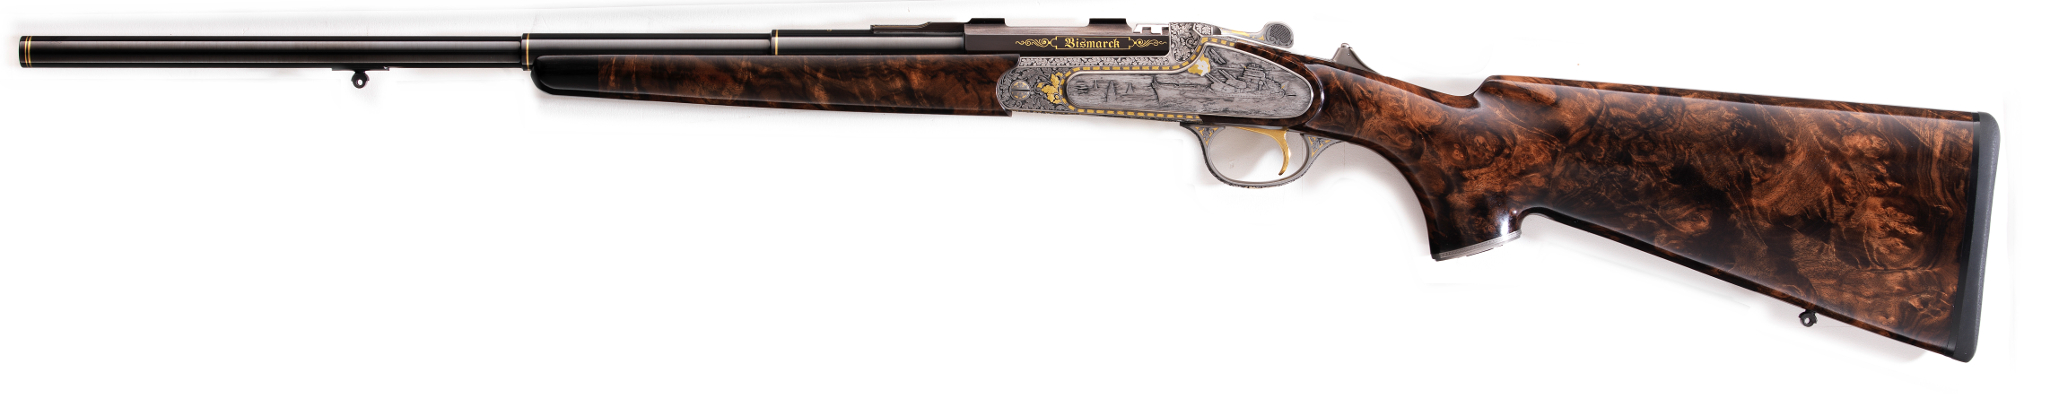 Prinz No. 1 German Navy commemorative rifle